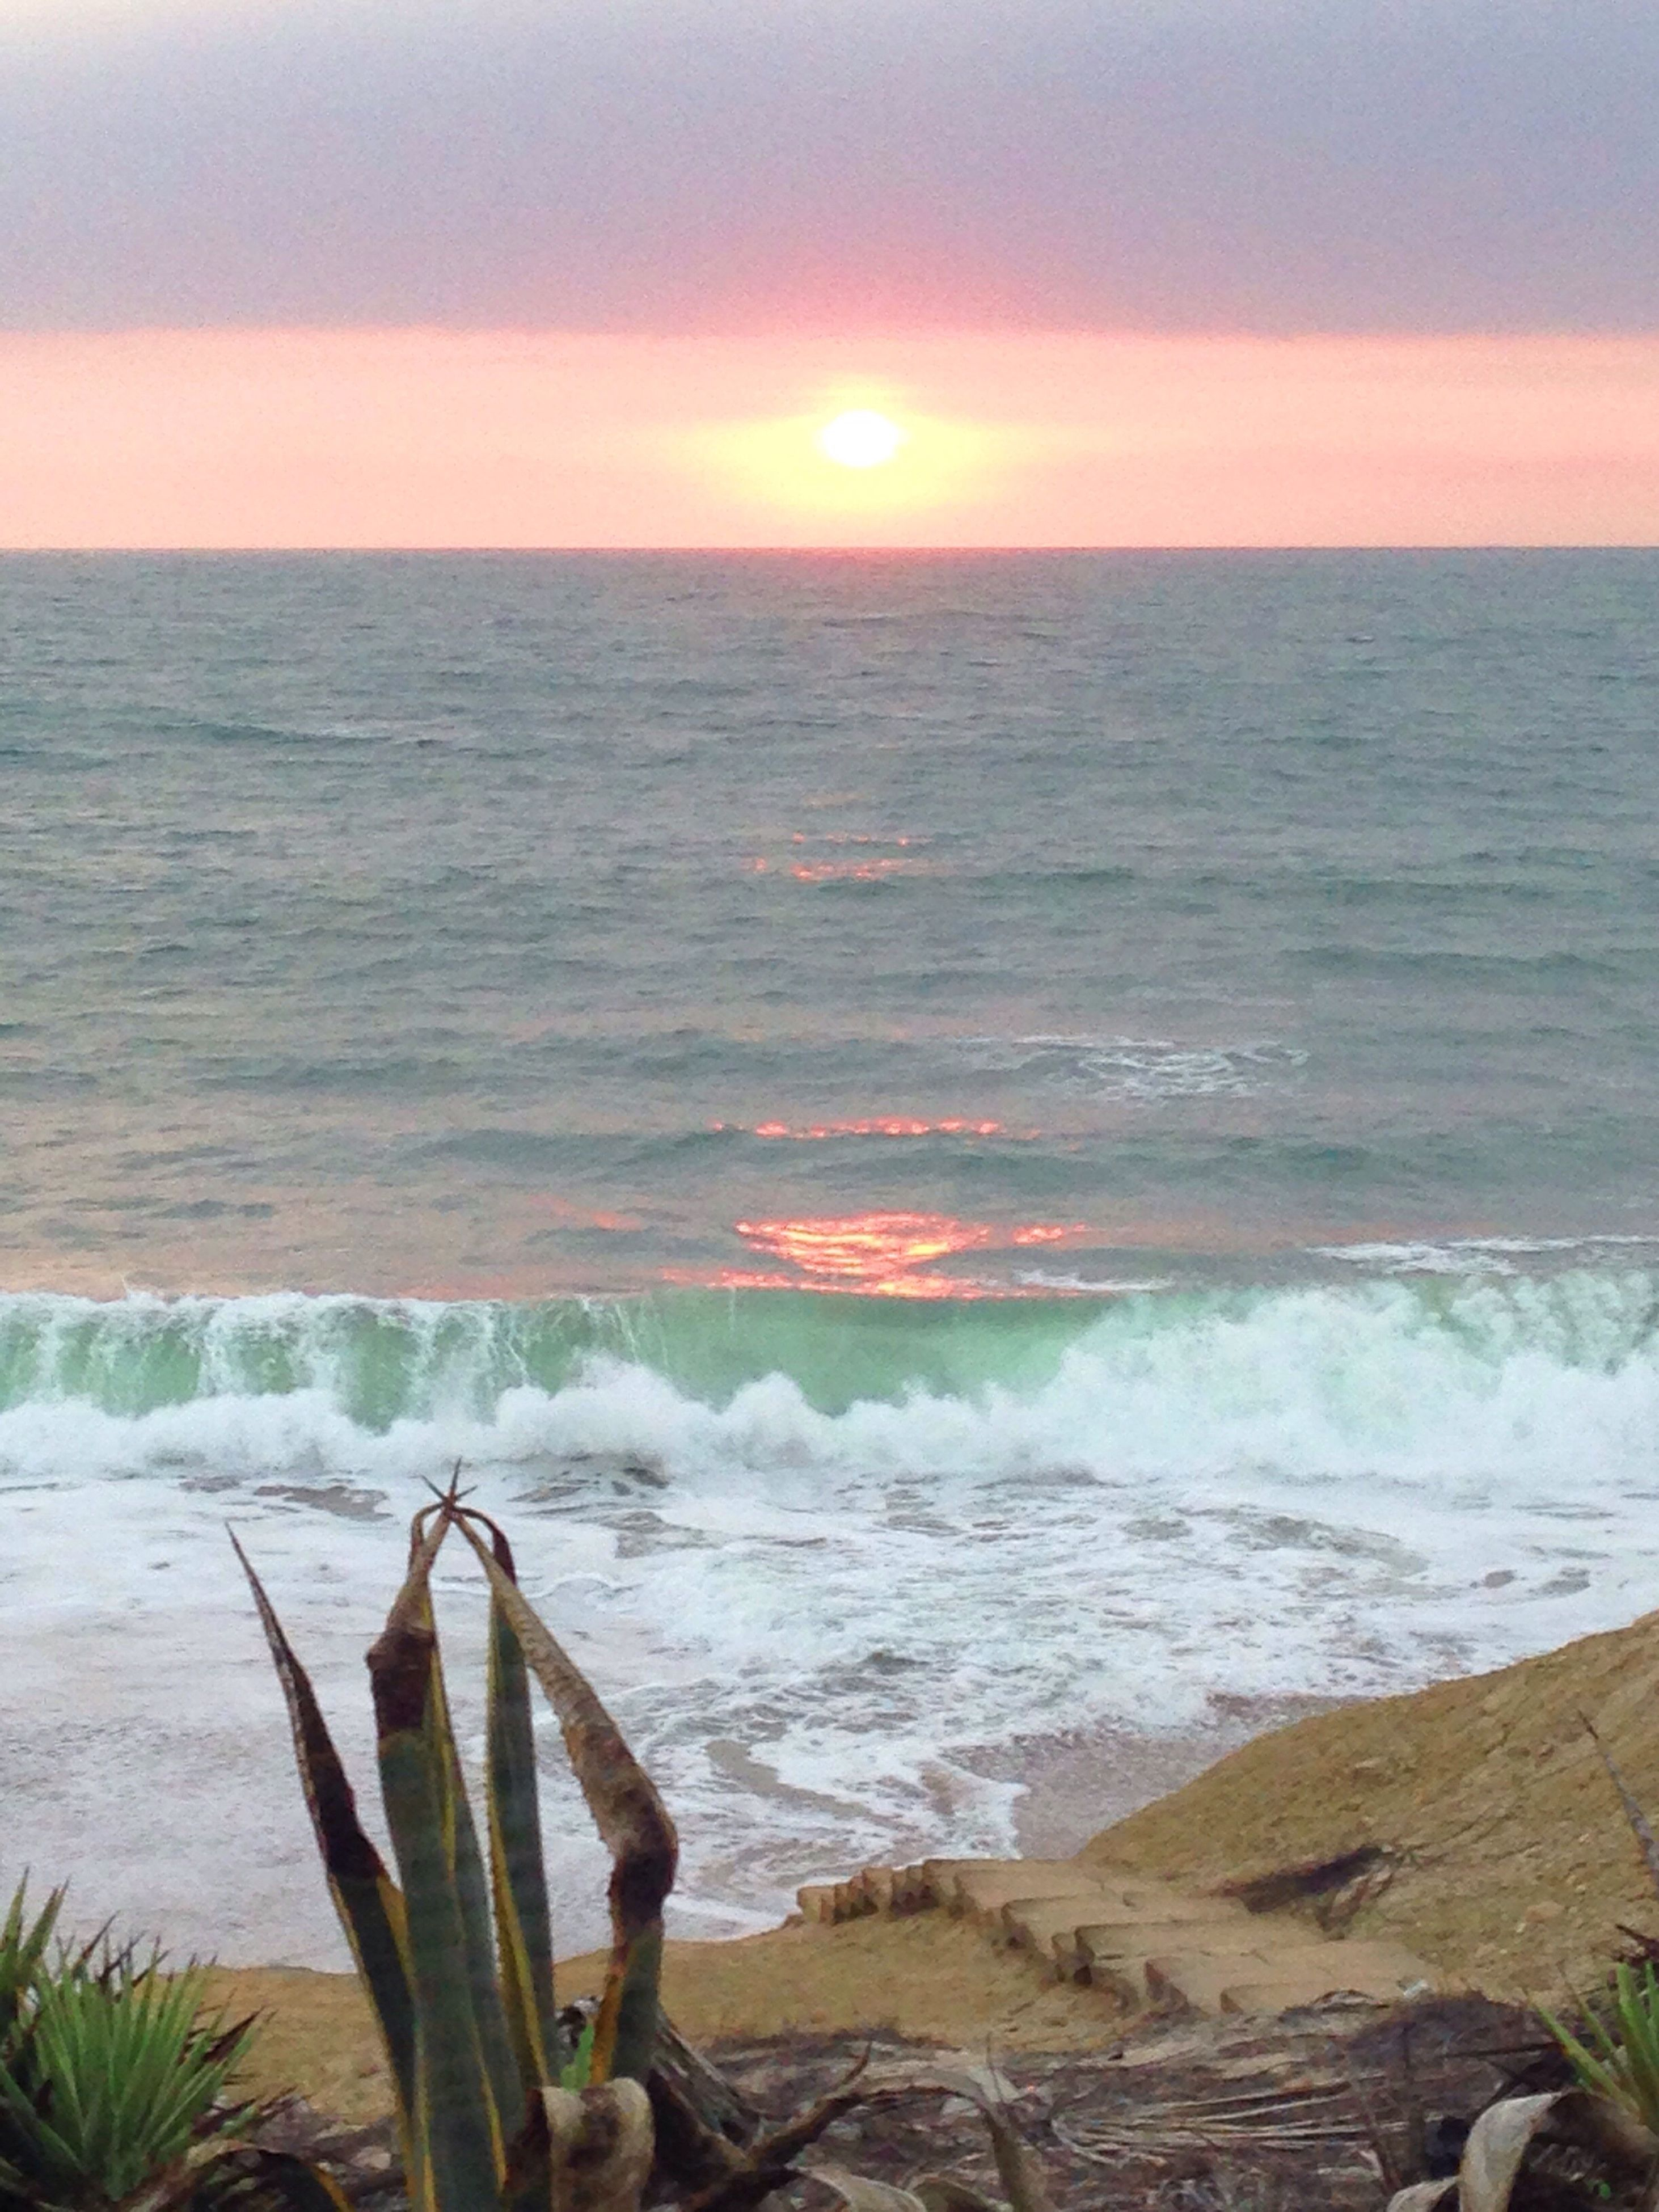 sea, nature, beauty in nature, water, scenics, horizon over water, sunset, tranquil scene, sky, no people, tranquility, outdoors, beach, wave, tree, day